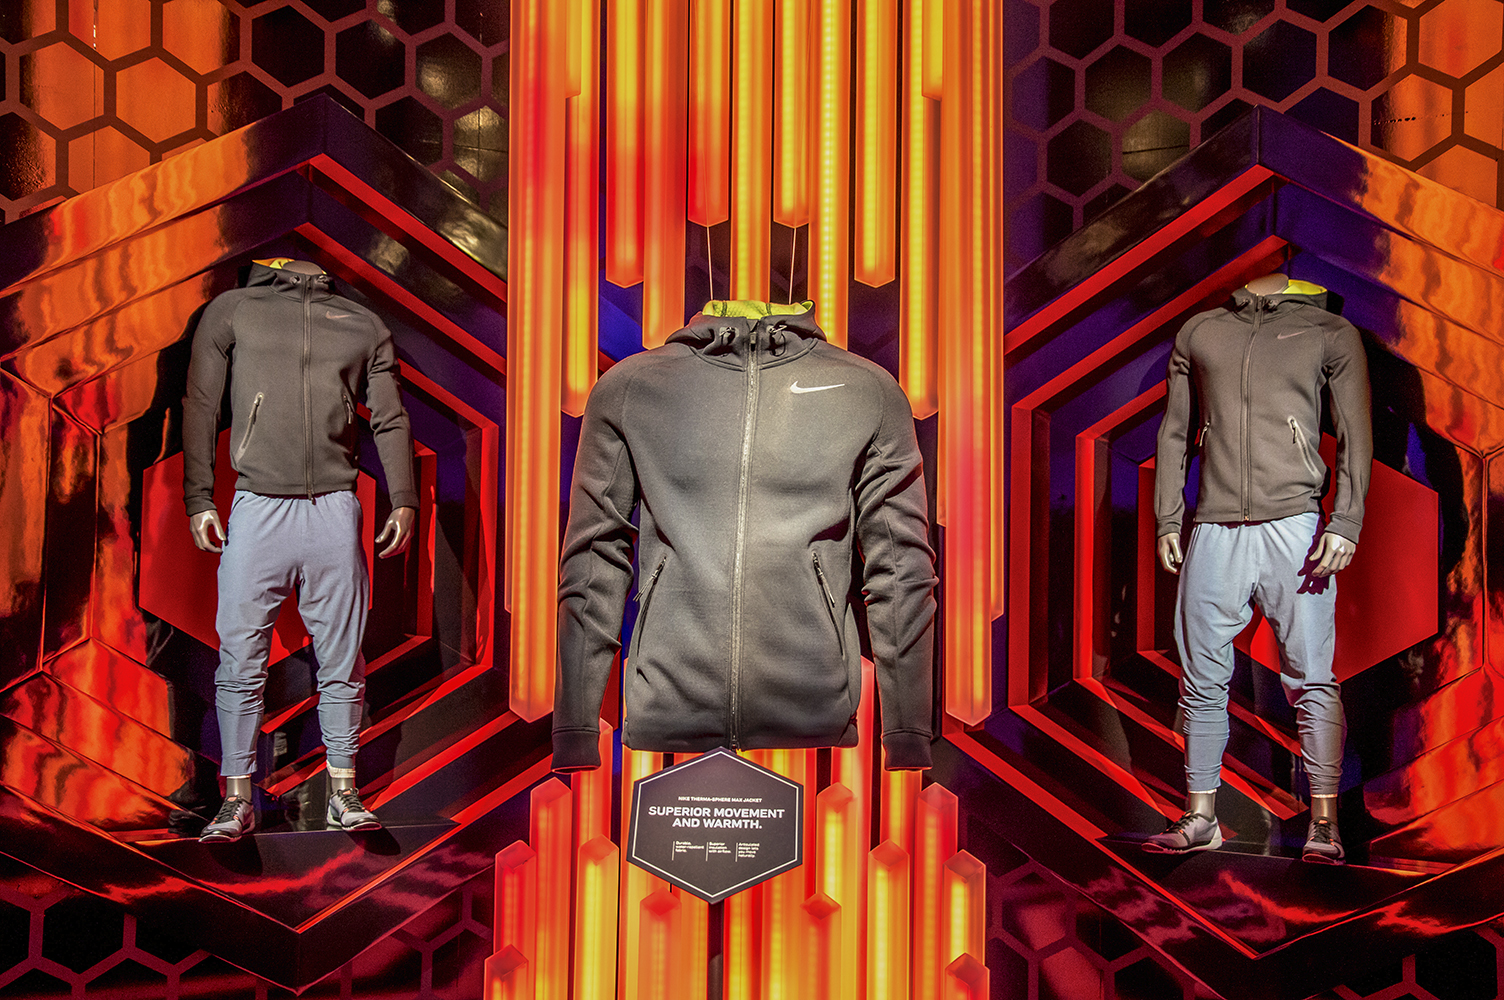 THERMA-SPHERE MAX + HYPER WARM    NikeTown New York, NY  |  2015